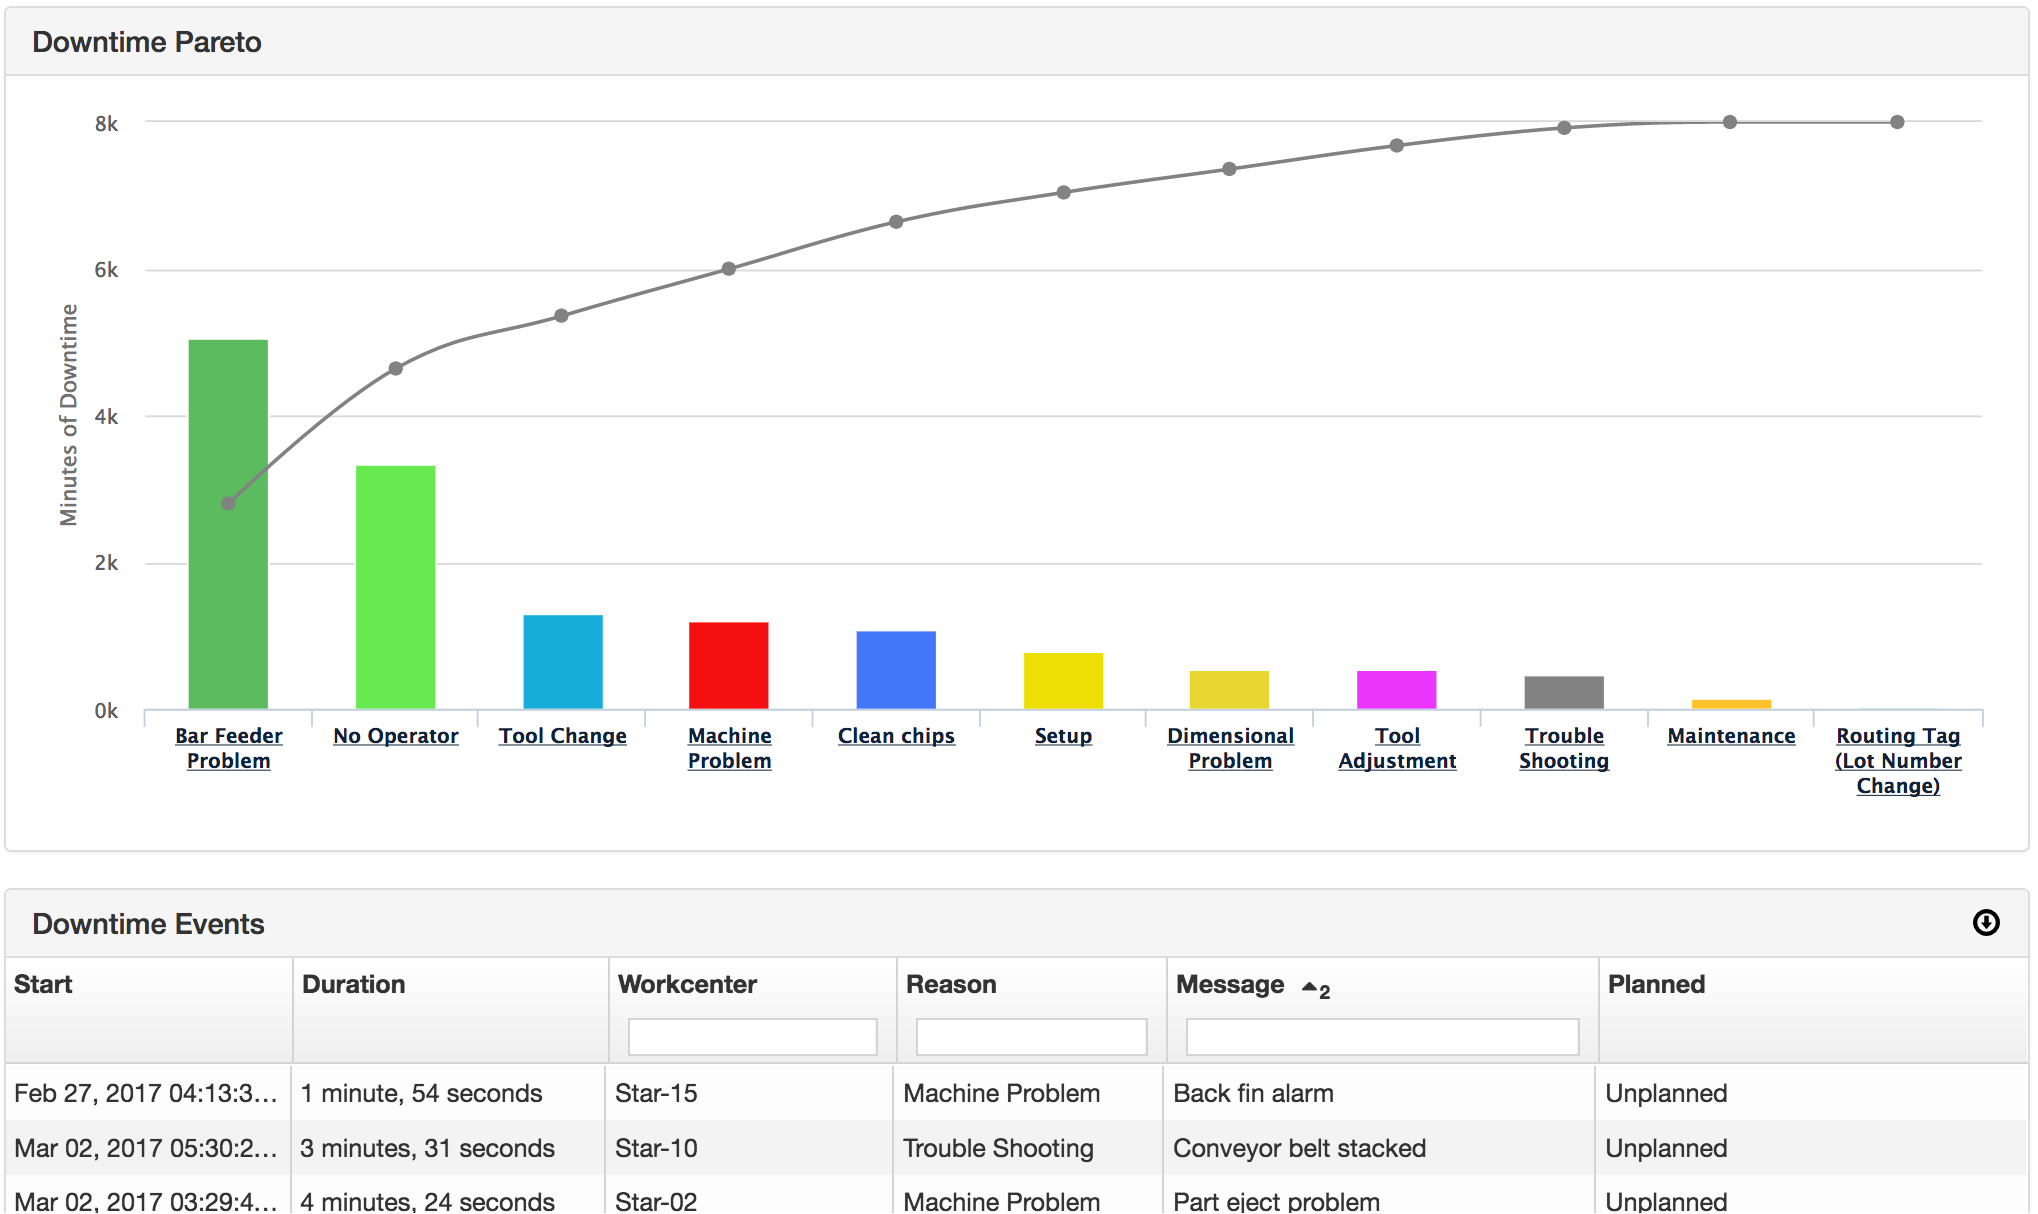 MachineMetrics' downtime pareto report highlights the most common reasons for downtime.